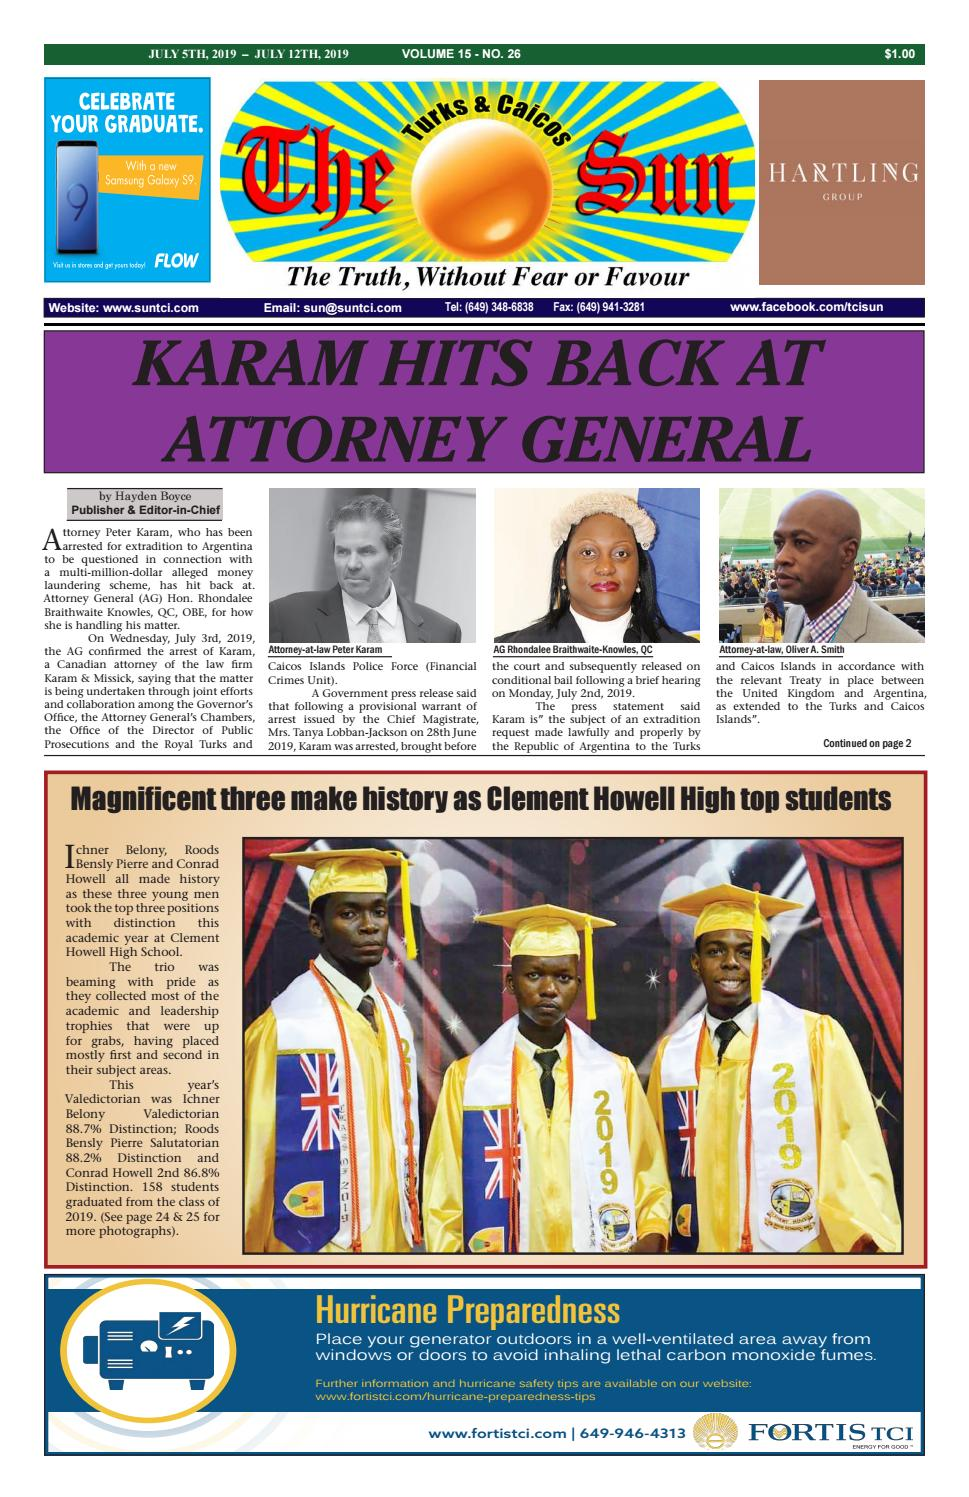 VOLUME 15 ISSUE 26 by The SUN Newspaper - issuu